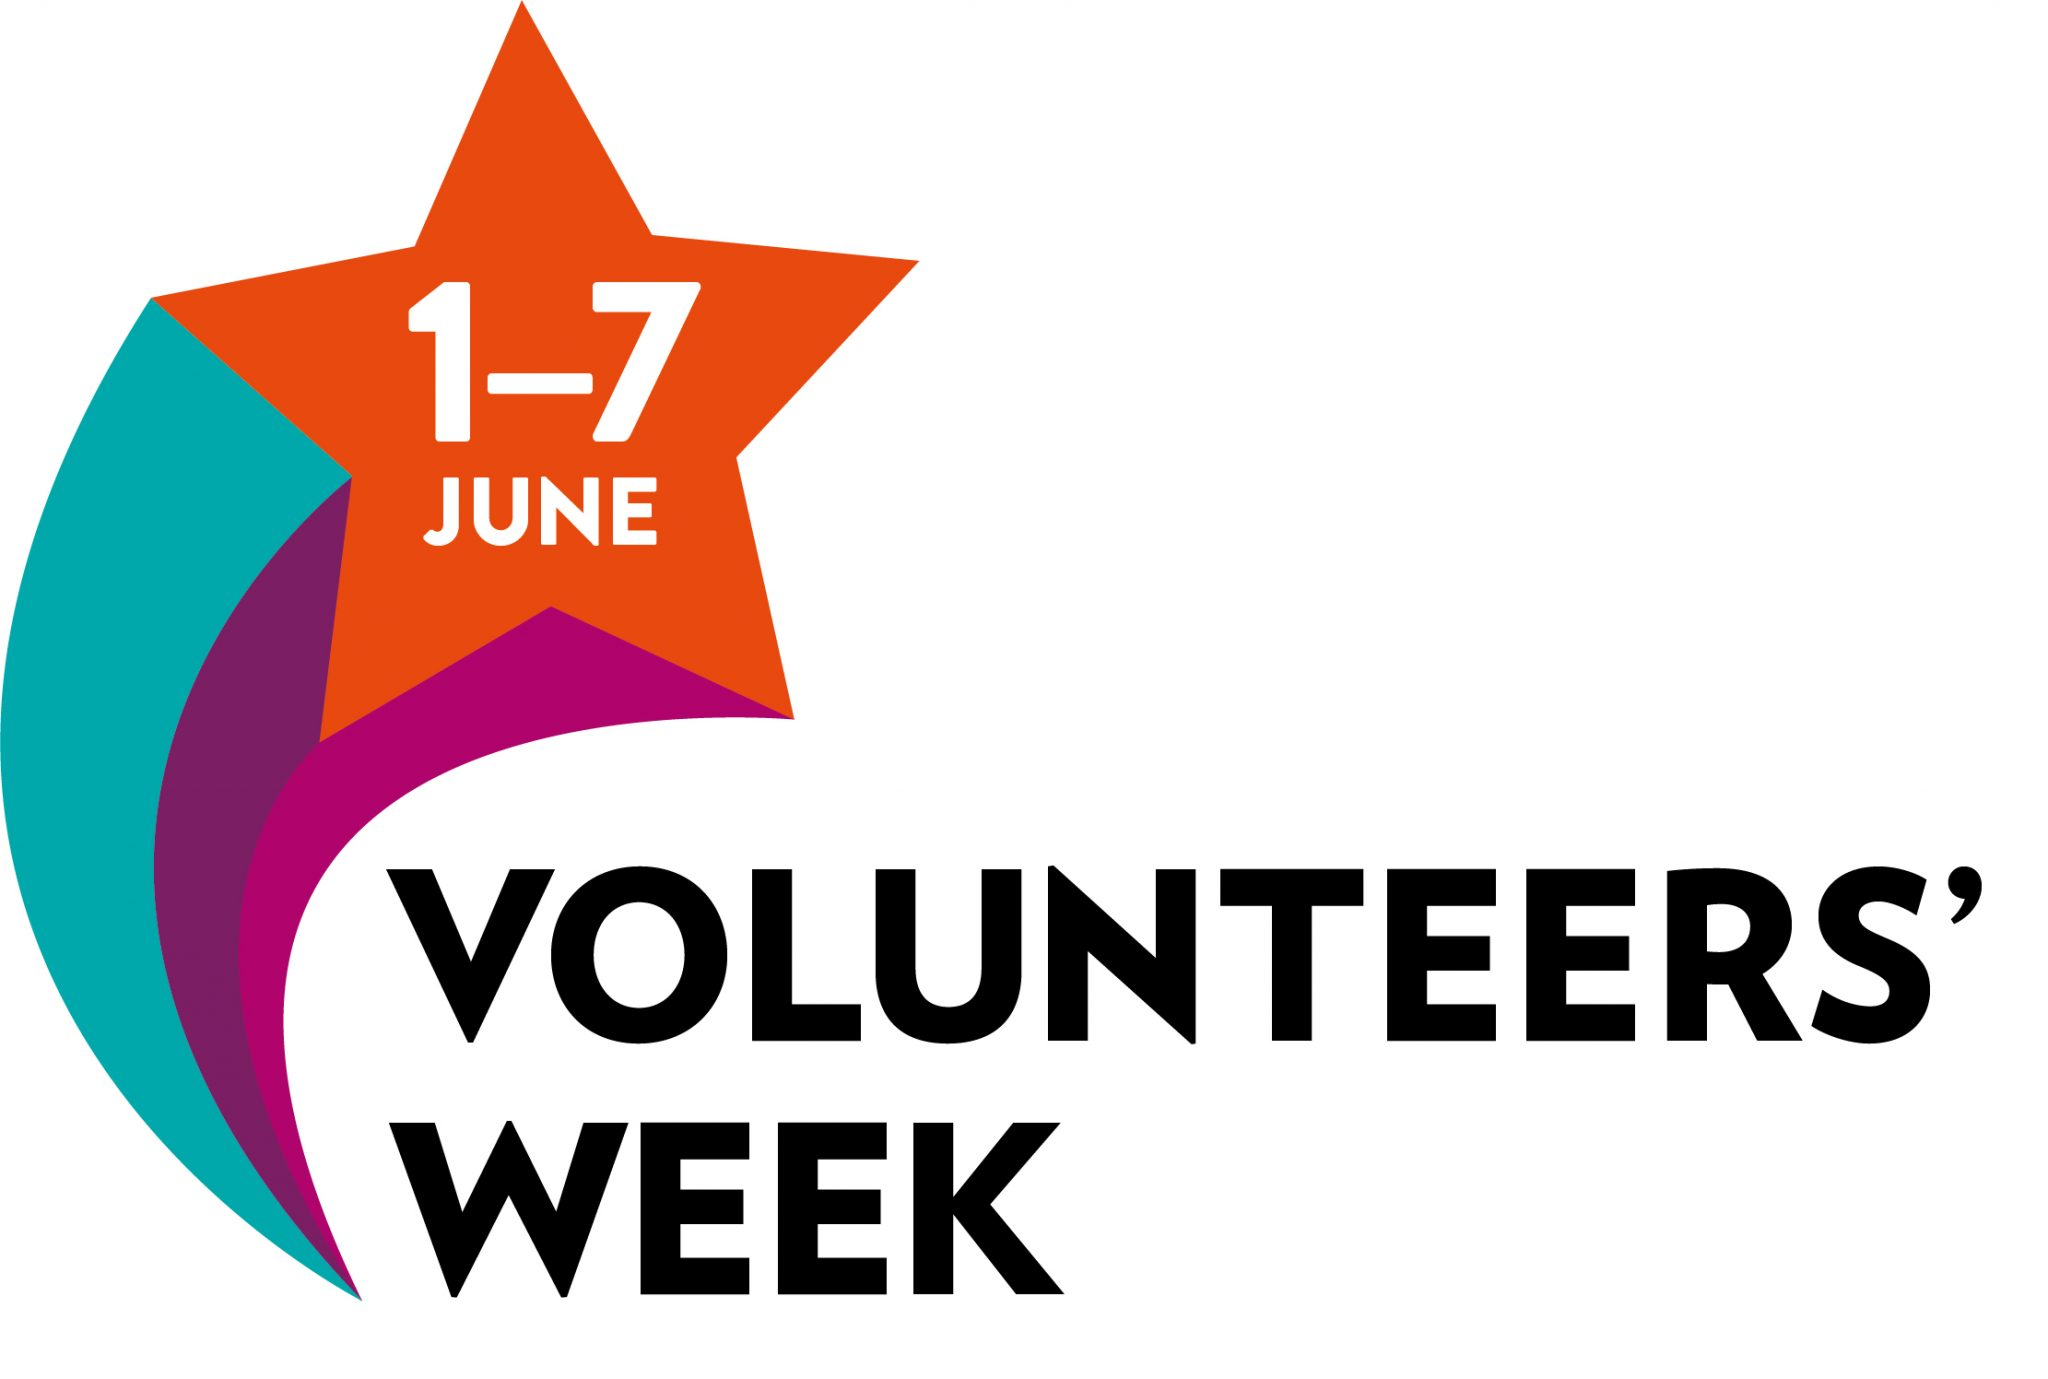 Celebrating Jigsaw (South East) Volunteers – Meet John Treharne